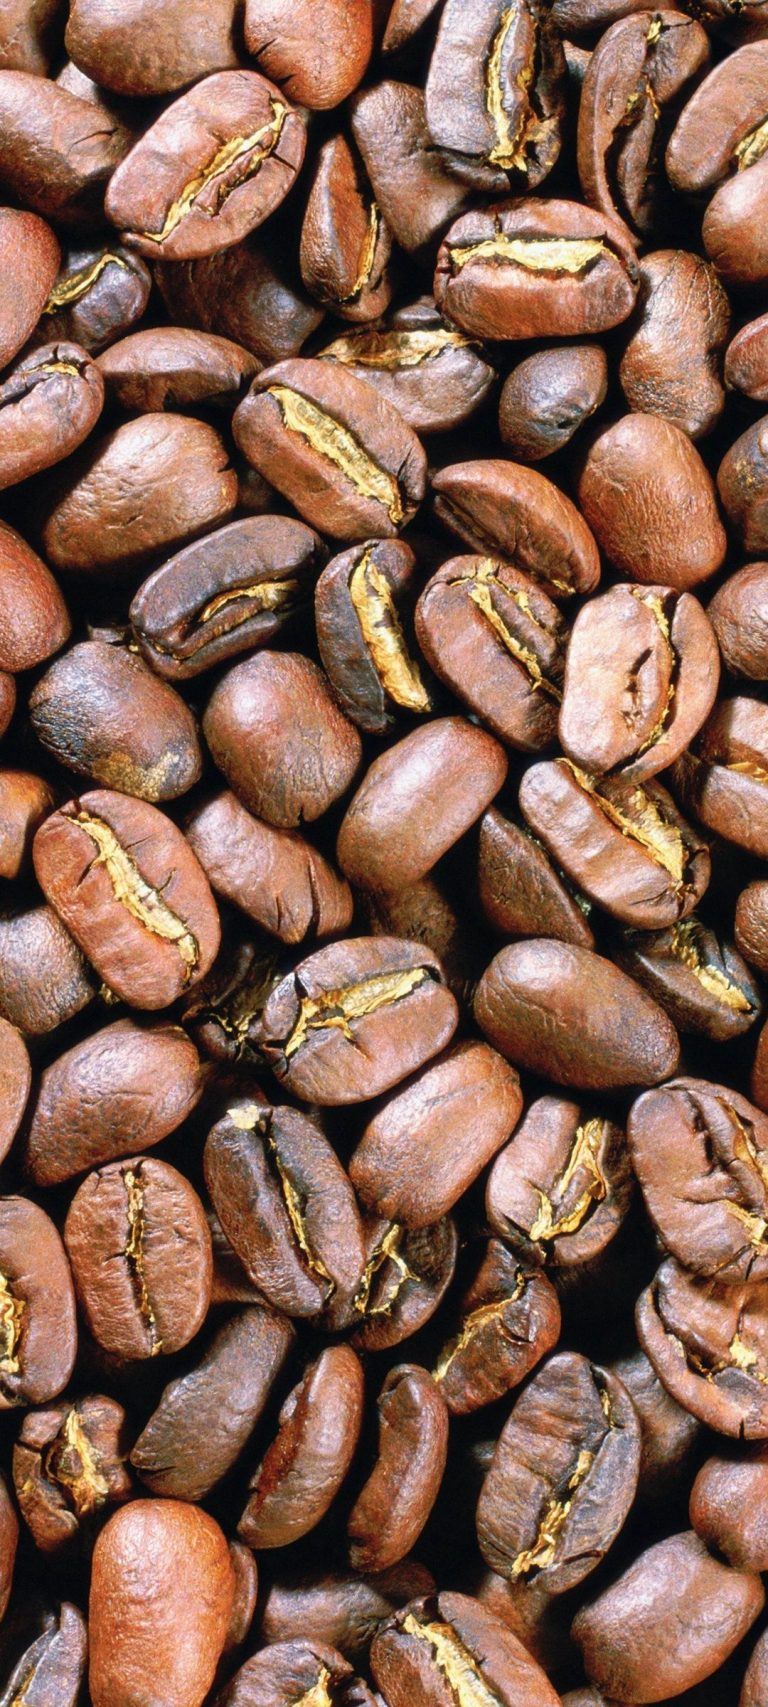 Grains Coffee Background